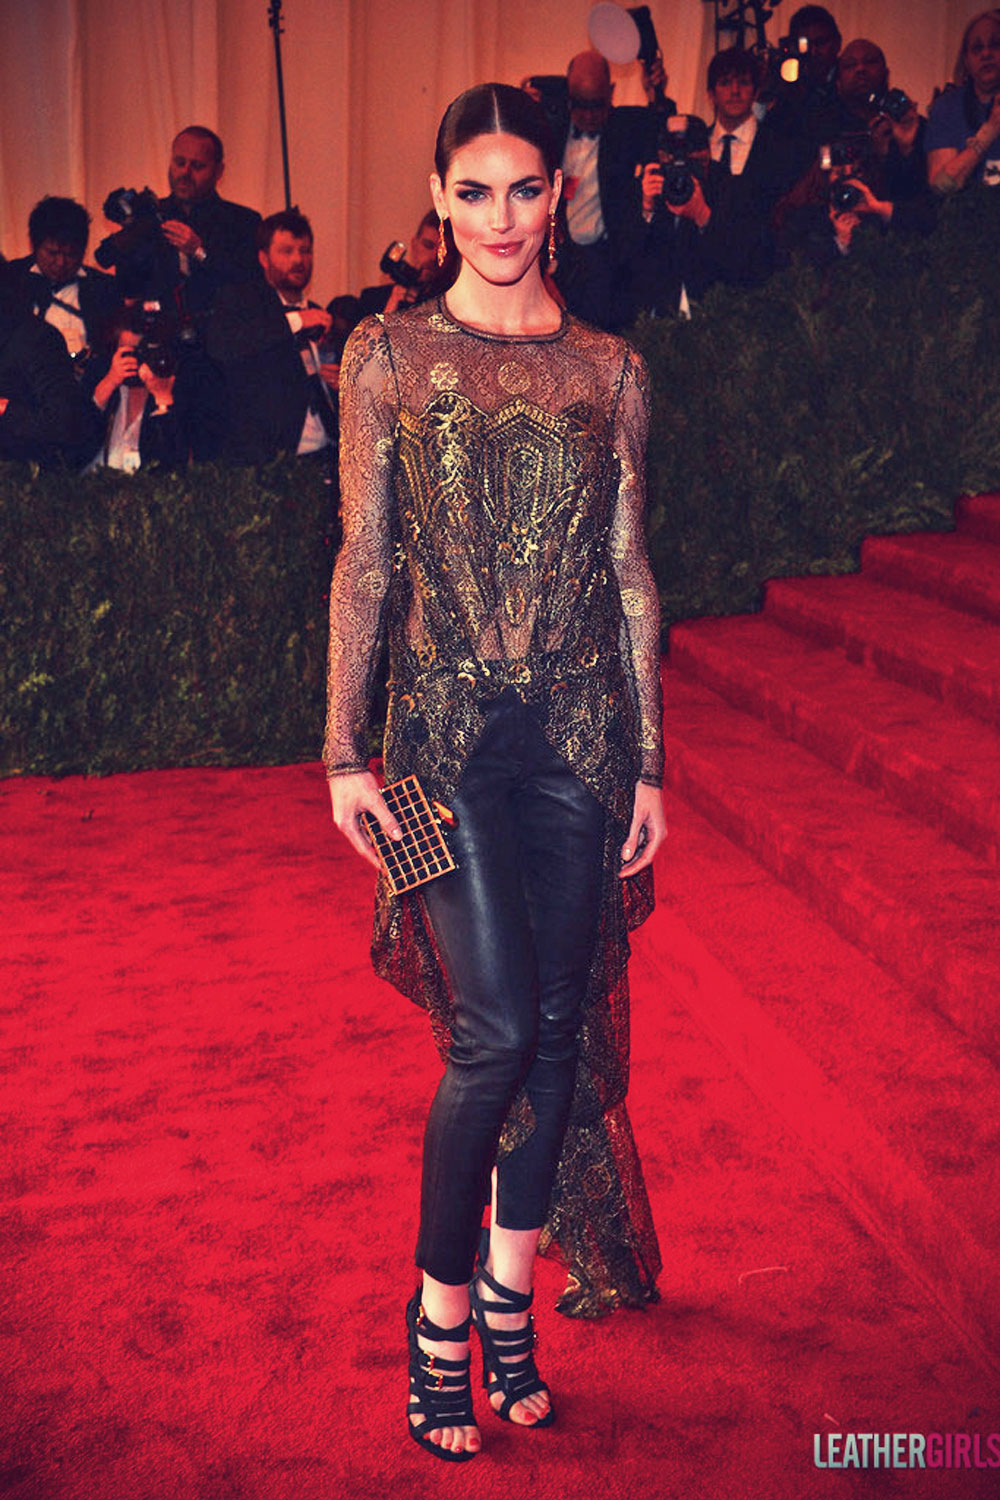 Hilary Rhoda attends the Costume Institute Gala for the Punk Chaos to Couture exhibition